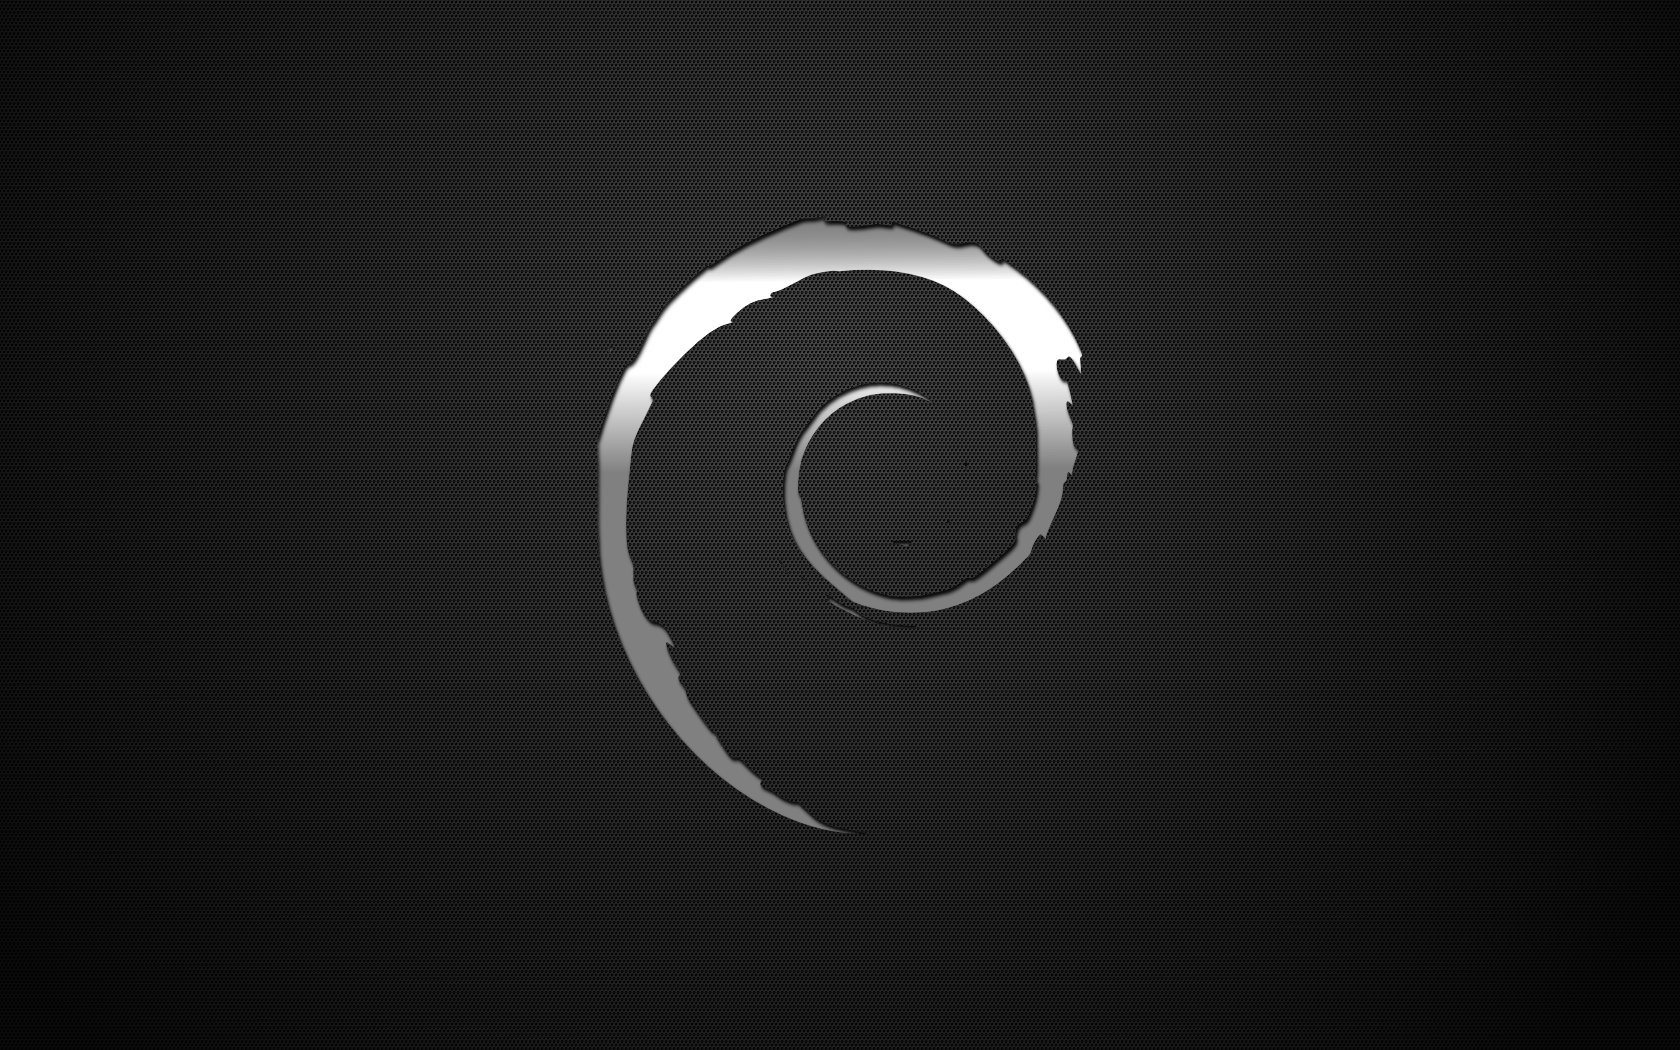 Debian Wallpaper Hd 1920x1080. 32. Debian_Steel__Dark_Mesh_by_monkeymagico.jpg